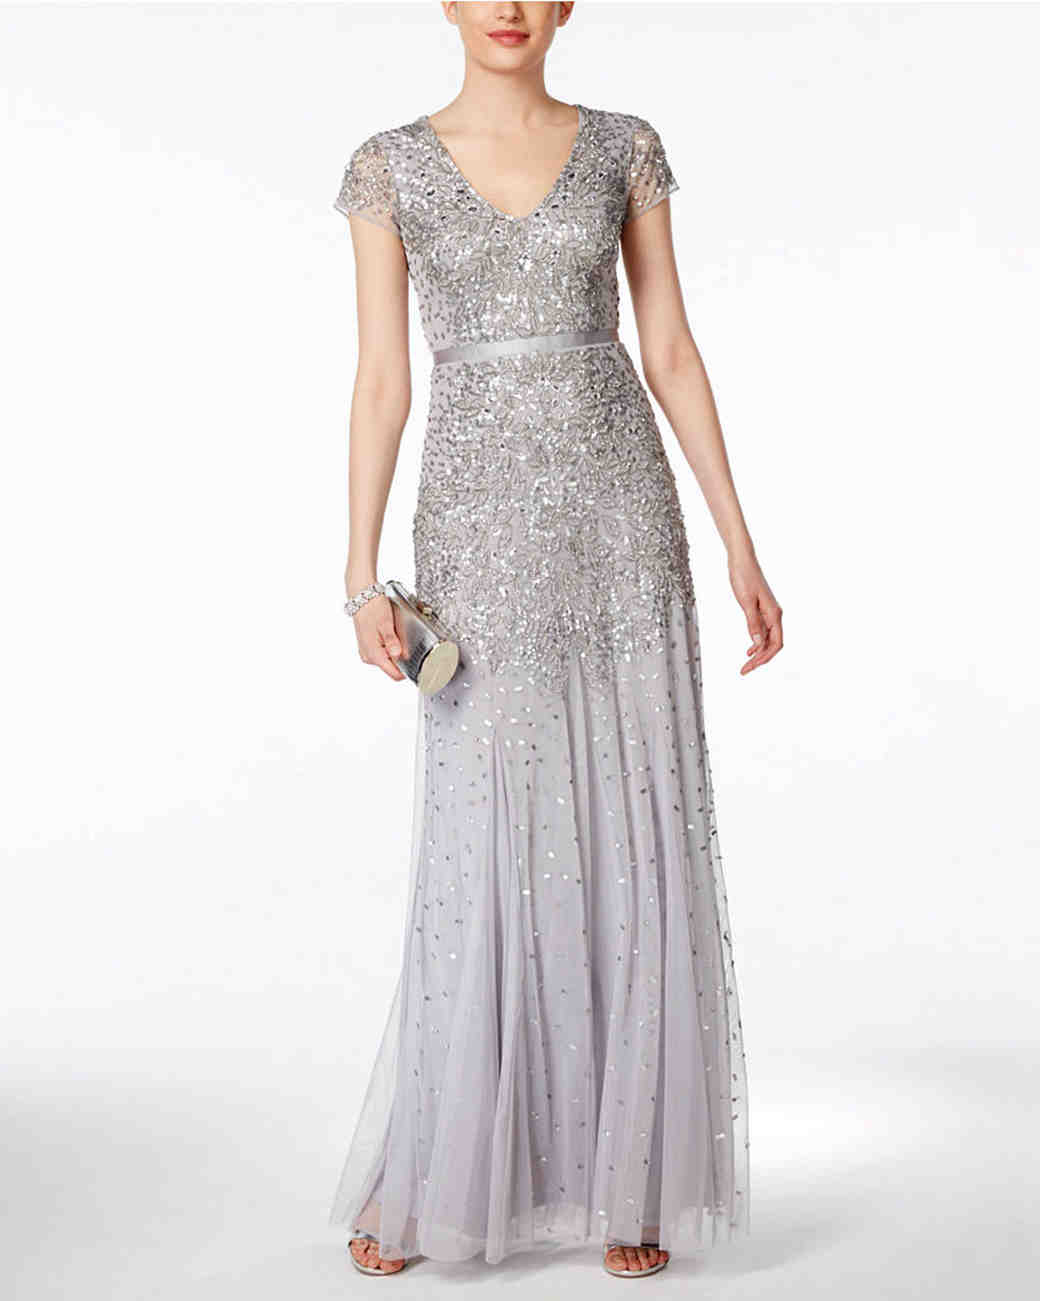 57114edc476 Metallic Bridesmaid Dresses That You Can Wear Over and Over Again ...